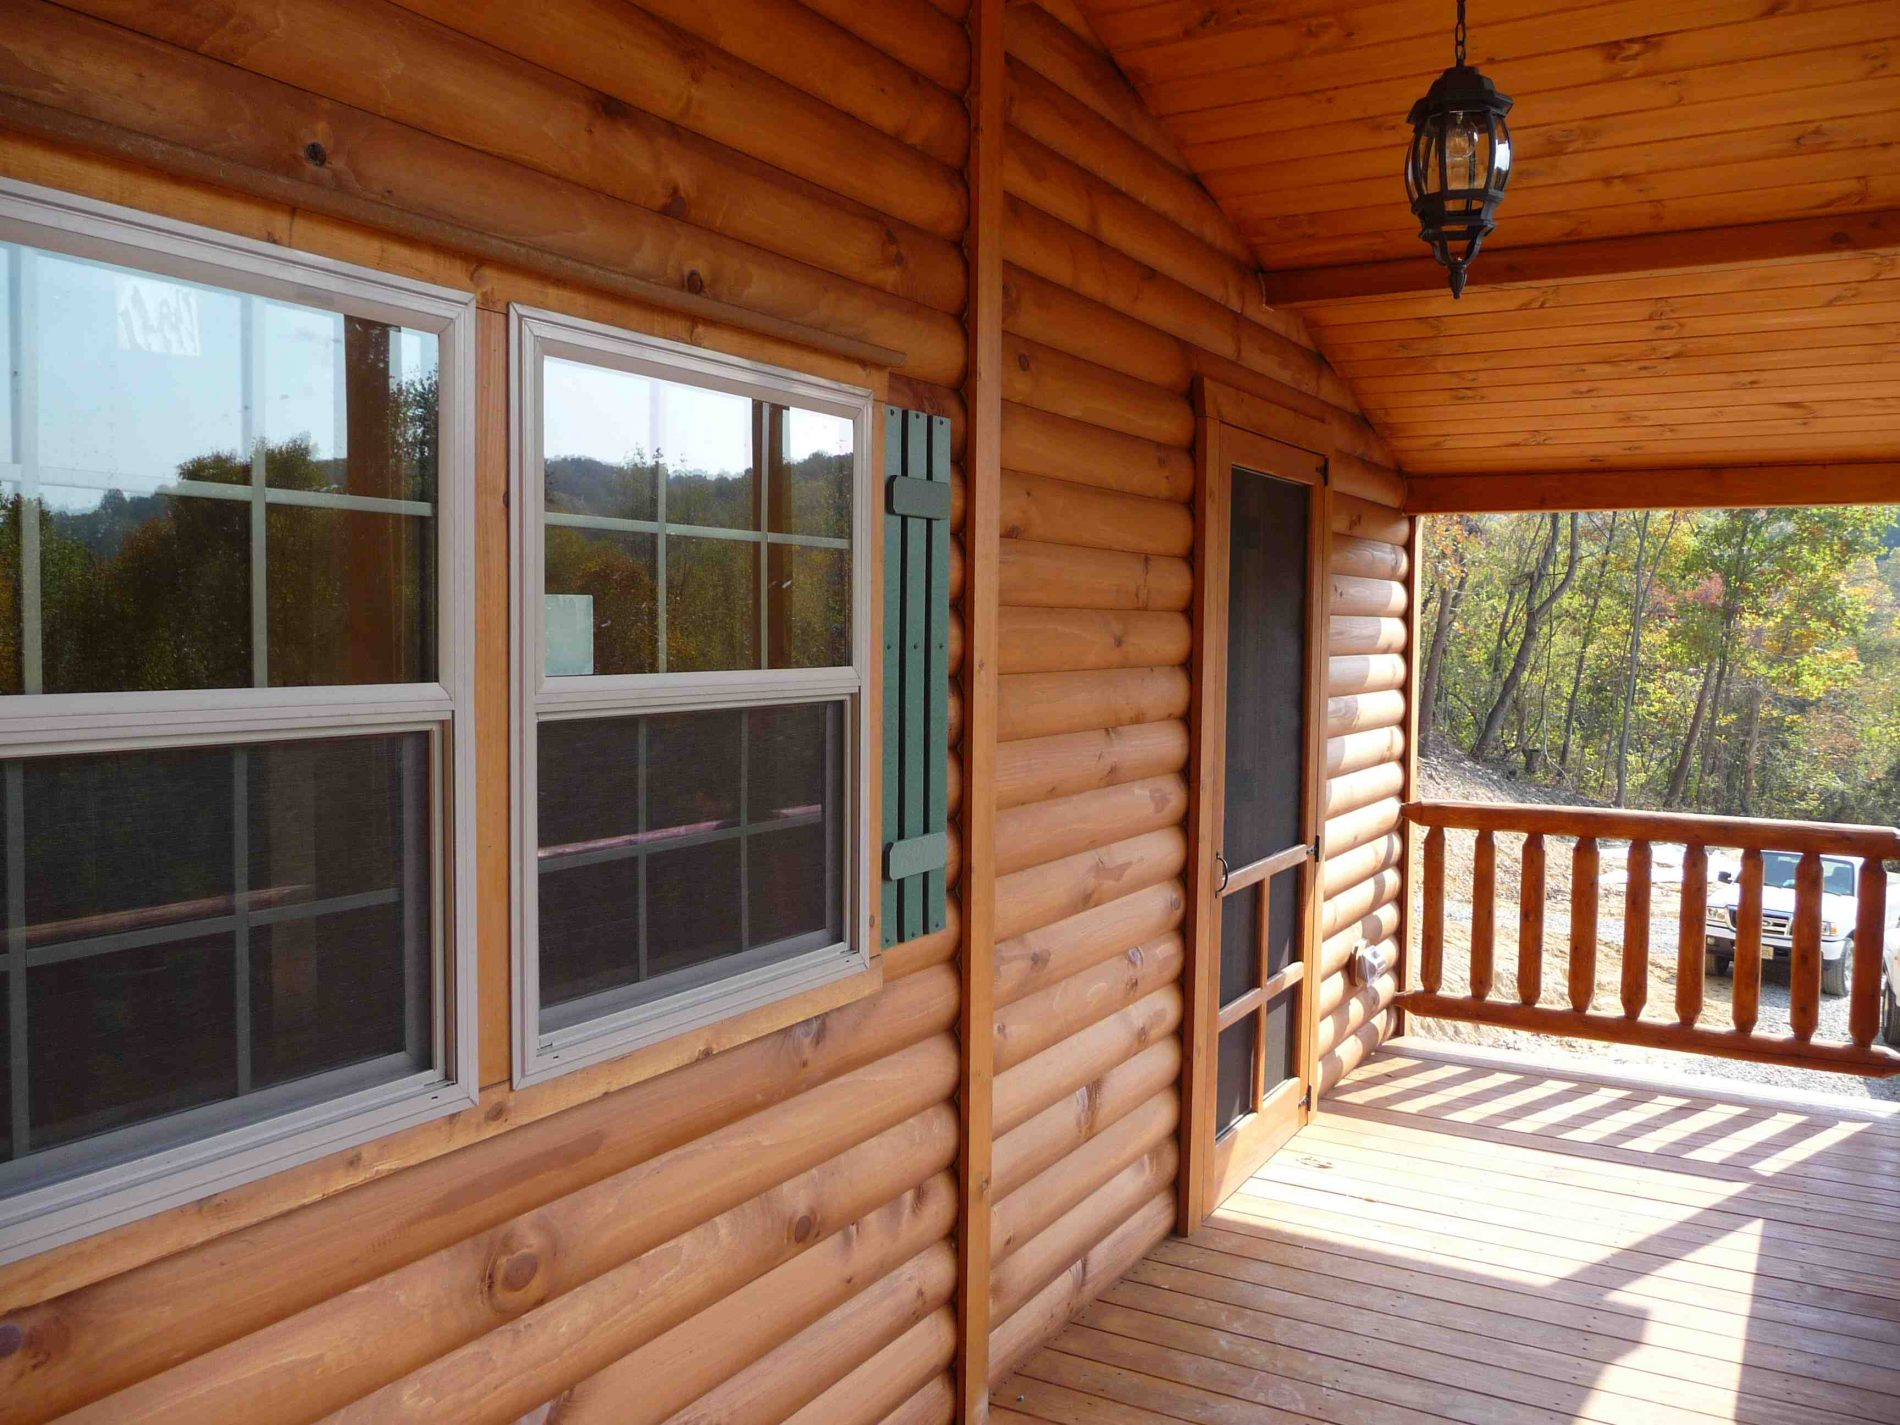 Modular Log Homes Prefab Log Cabins Modular Log Cabin